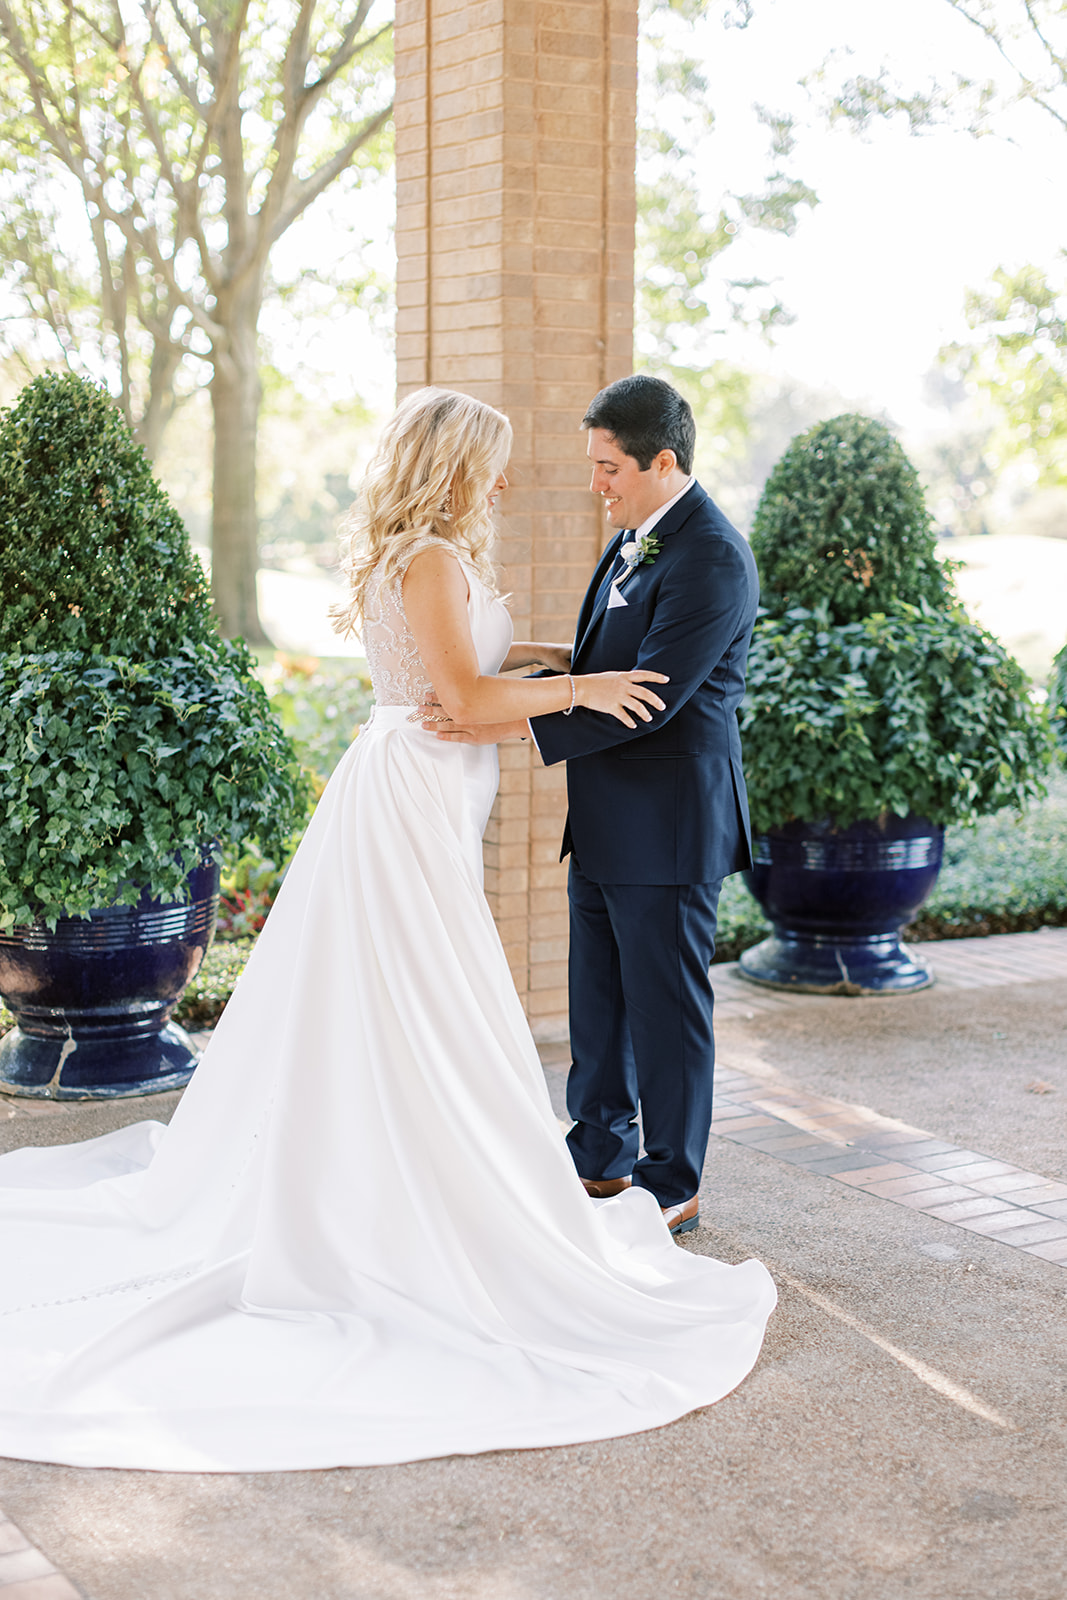 Gleneagle Country Club wedding captured by Megan Kay Photography